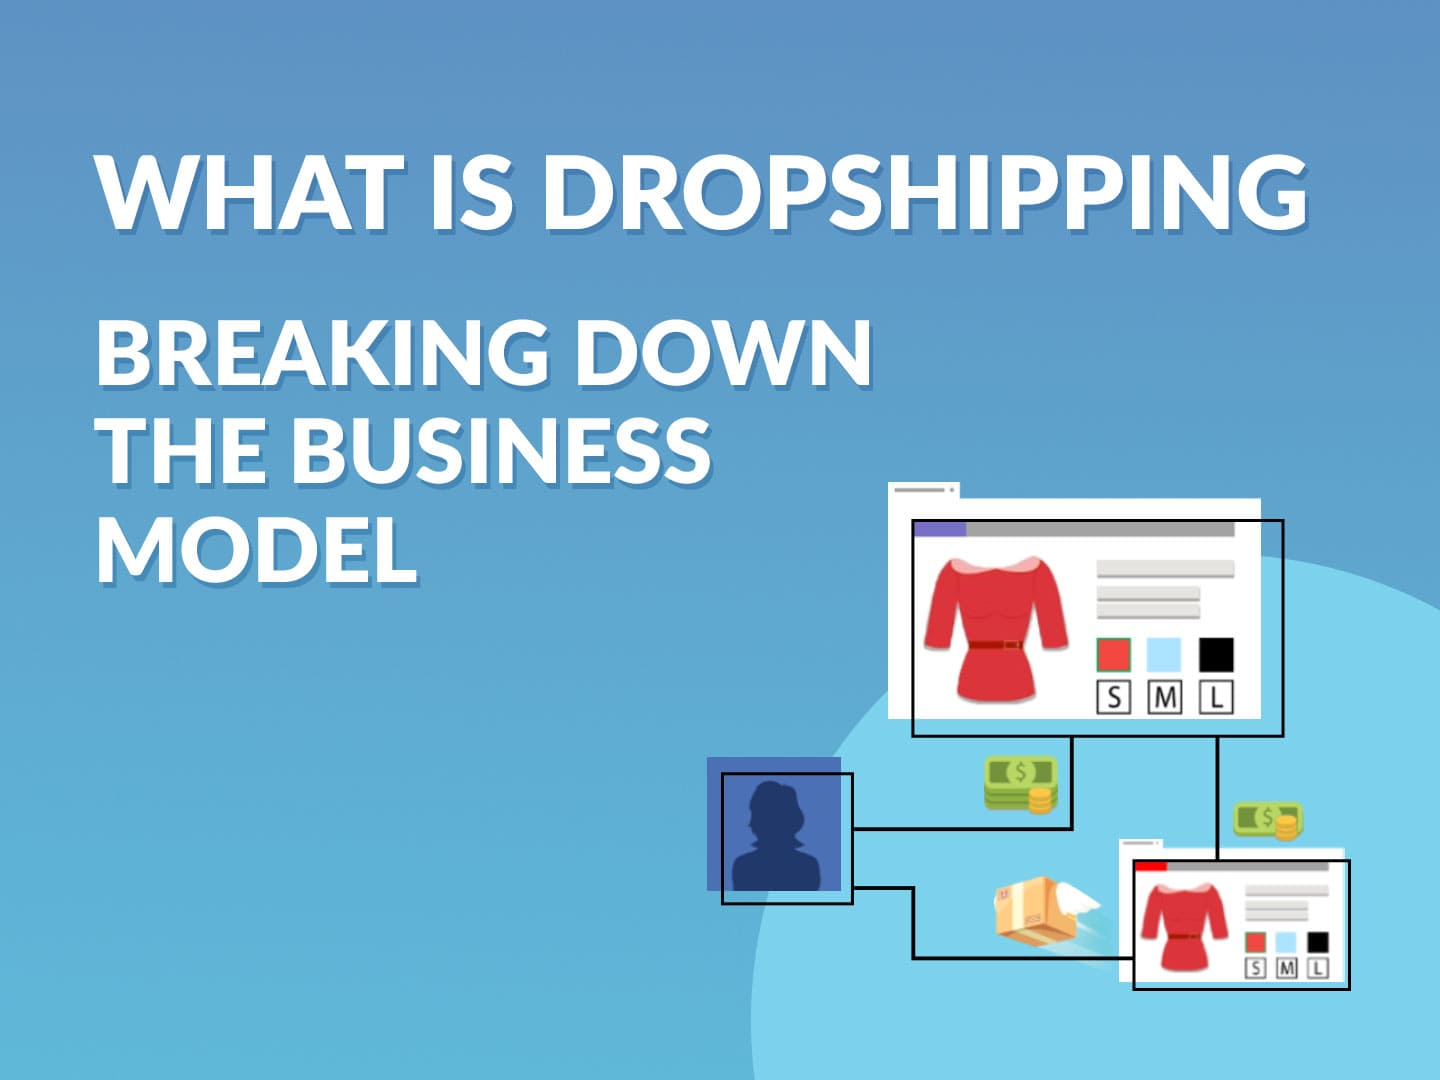 WHAT-IS-DROPSHIPPING-BREAKING-DOWN-THE-BUSINESS-MODEL